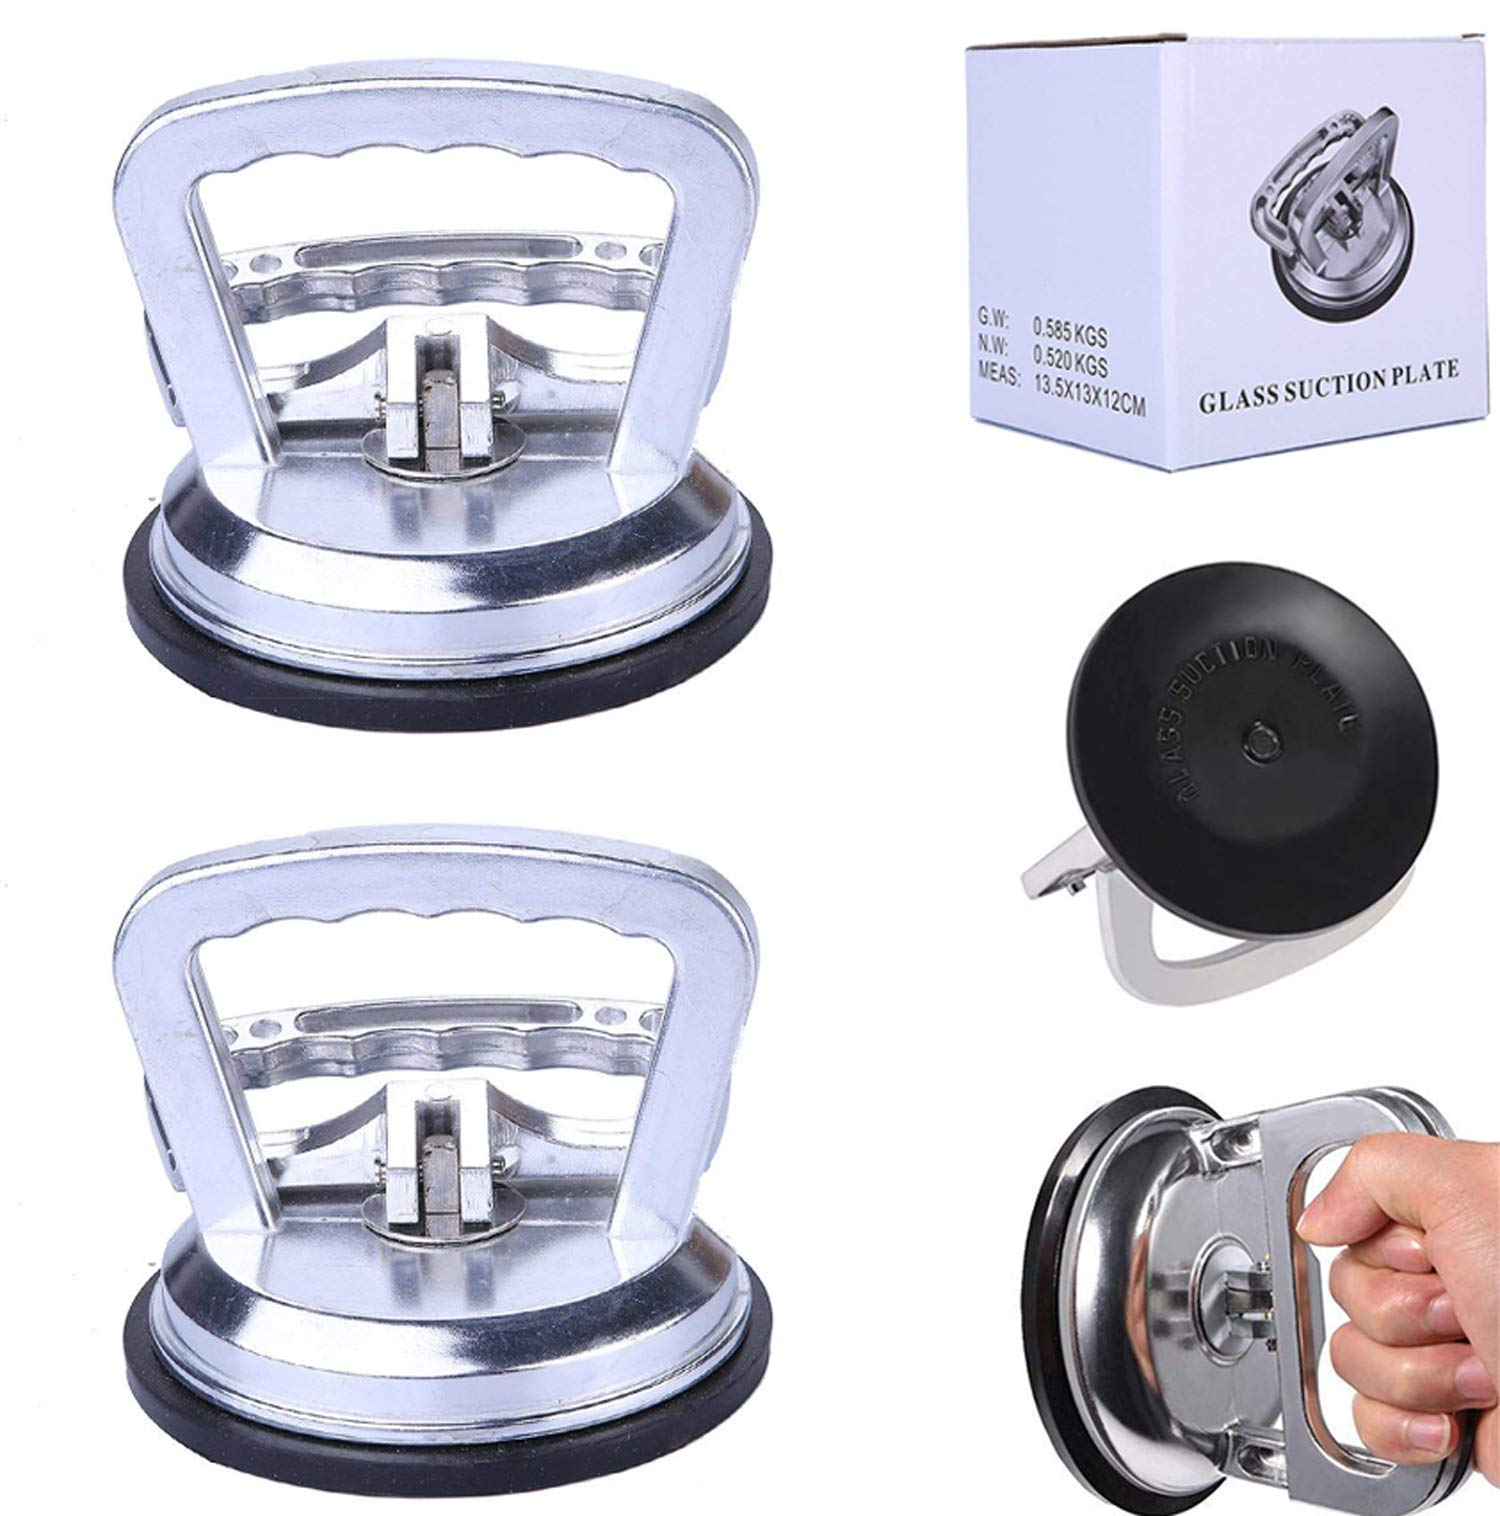 2 Pcs Dent Puller, Silver Suction Cup Handle Dent Puller – Heavy Duty Aluminum High Performance Suction Cup Lifter For Glass, Tiles, Mirror, Car Dent Repair Device, Body Repair, Glass Mirror Tiles